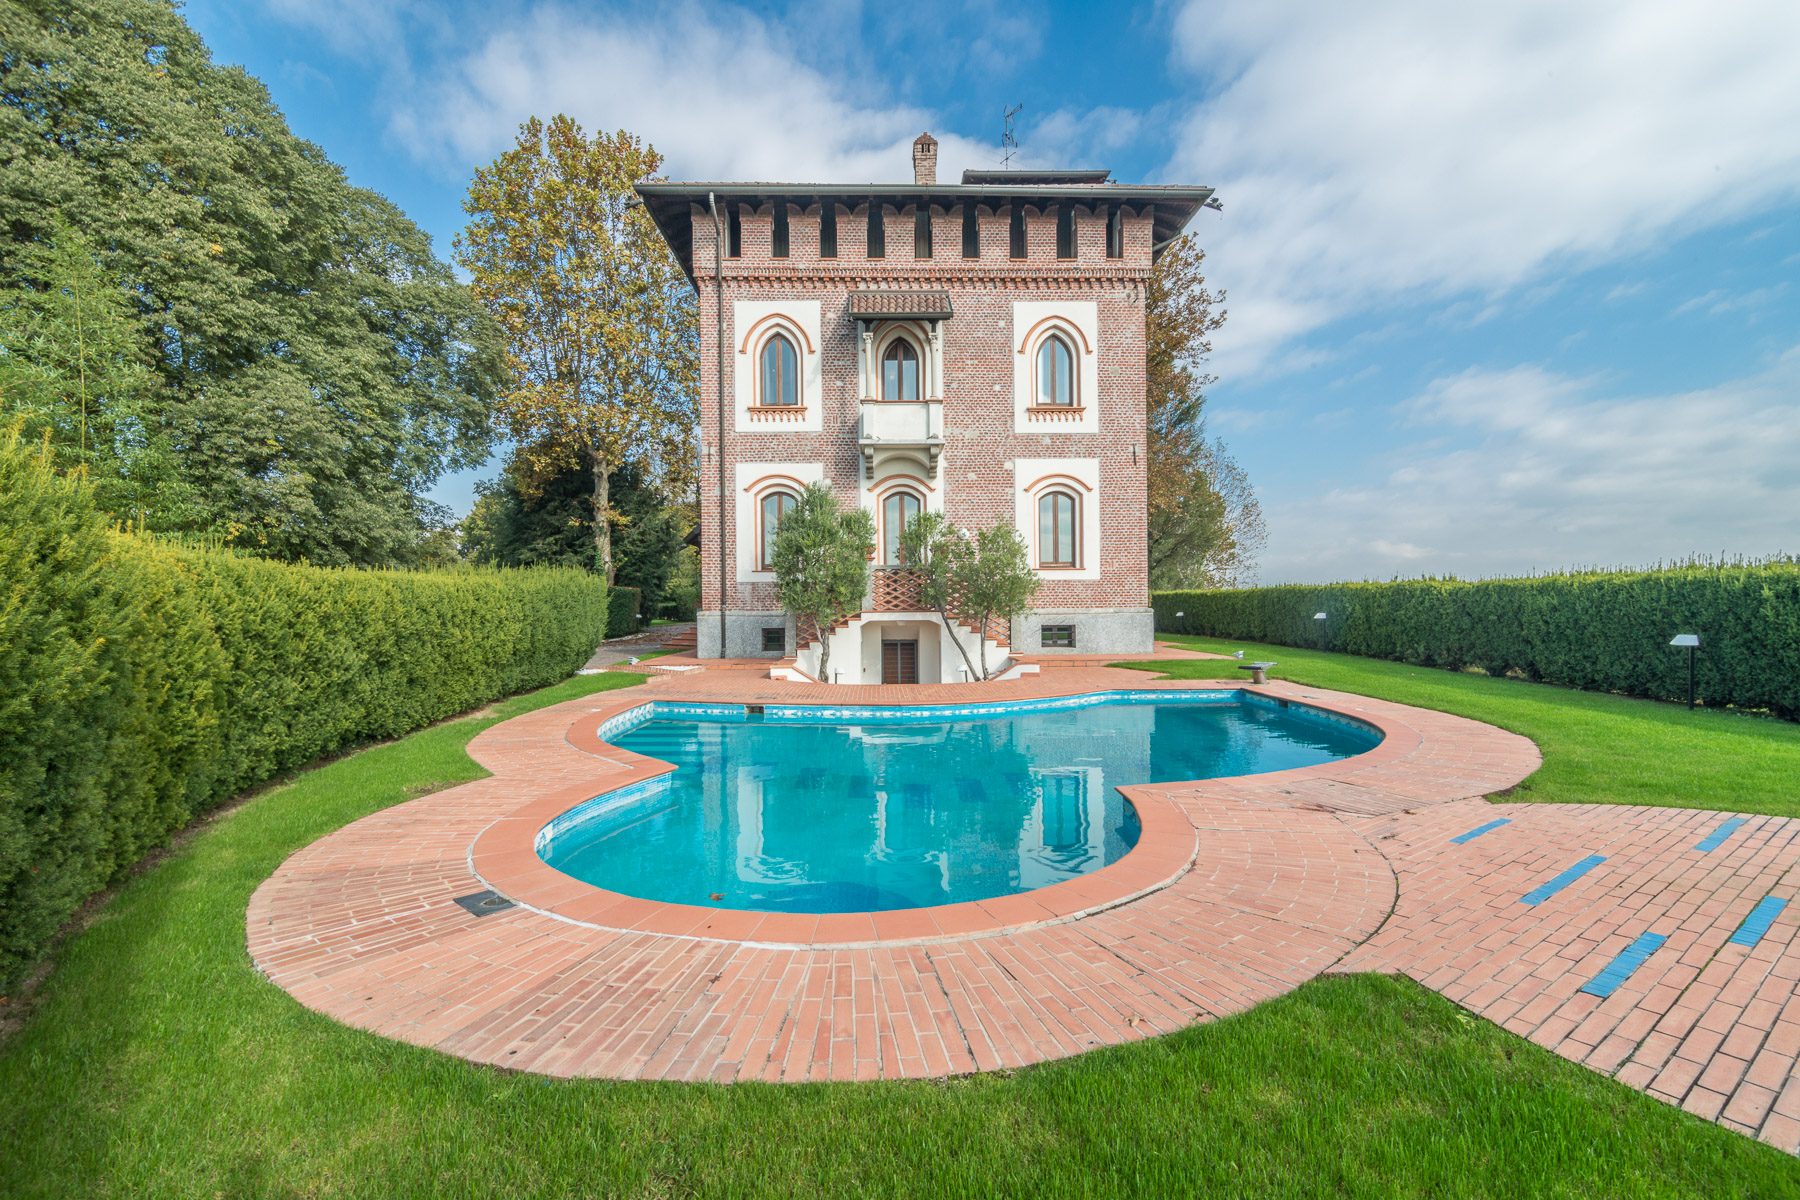 Additional photo for property listing at Prestigious historical villa close to Milan Via Friuli Cesano Maderno, Monza Brianza 20811 Italien